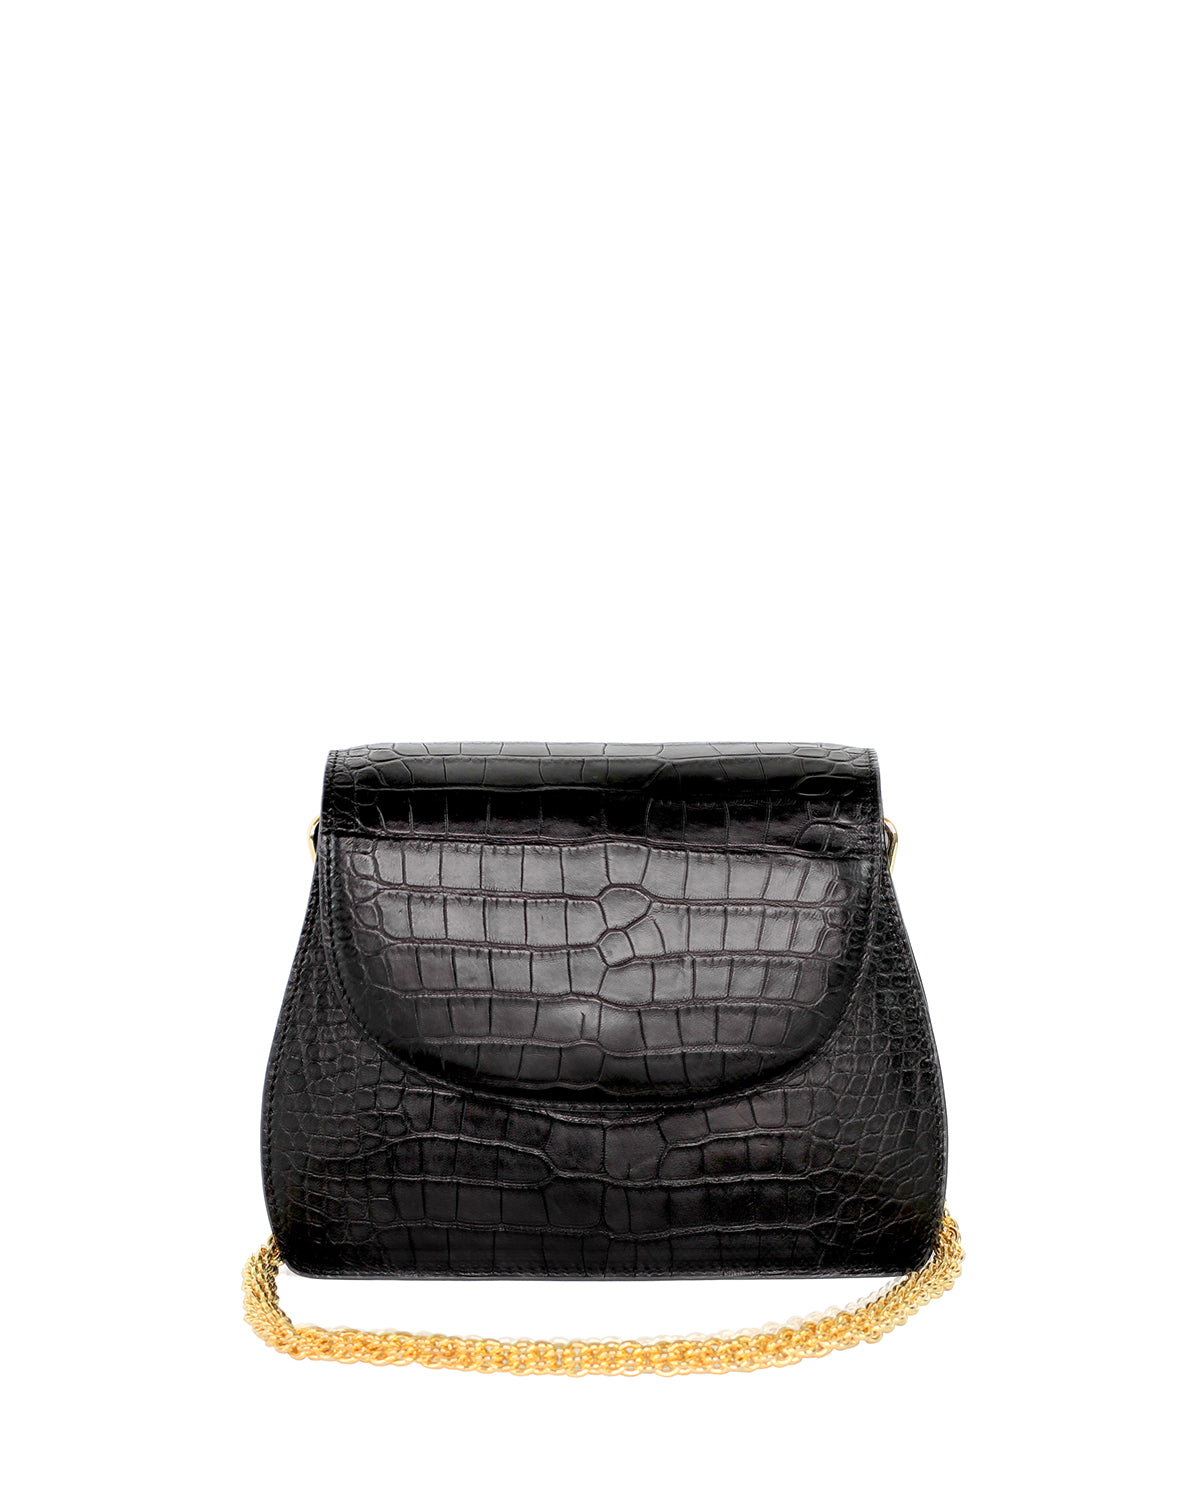 YB Black Alligator Benny Shoulder Handbag Yara Bashoor Yellow Gold Front View